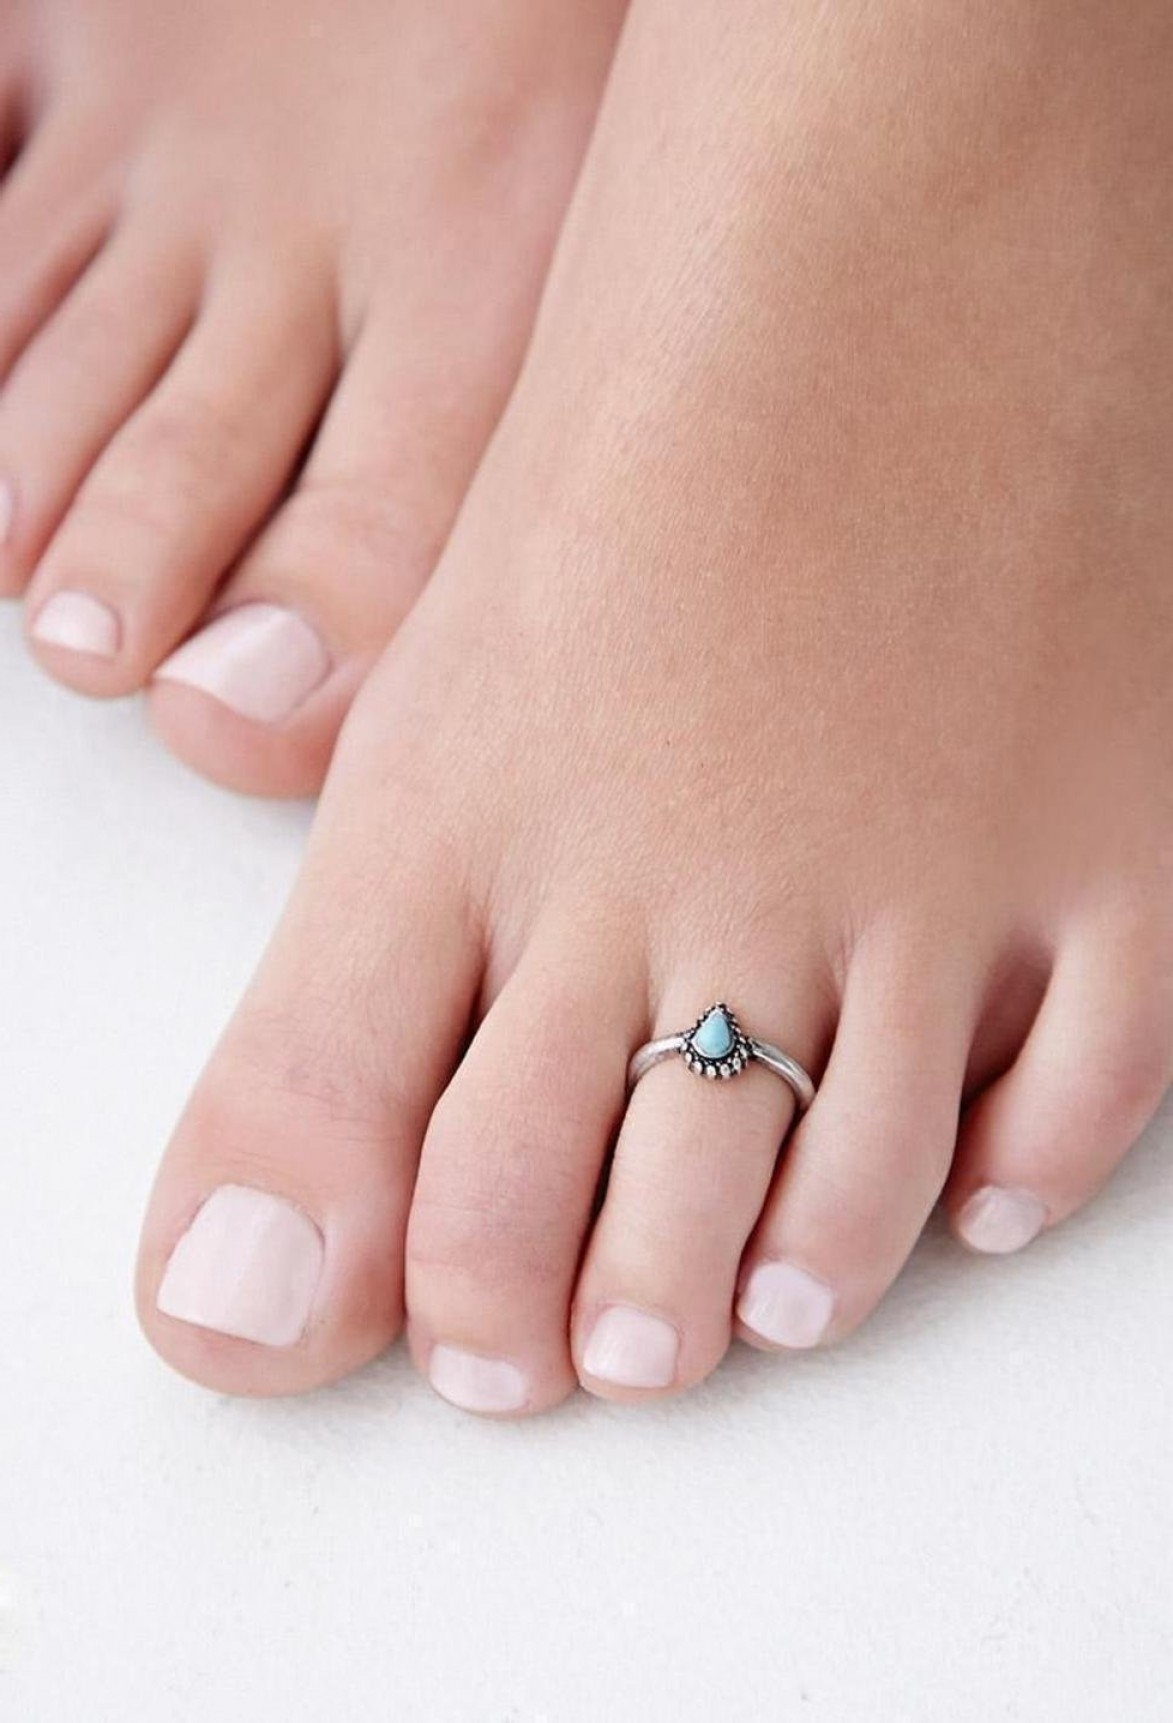 Affordable & Comfortable Toe Rings For Women | Trends4Us Regarding Most Popular Cheap Toe Rings (View 3 of 15)